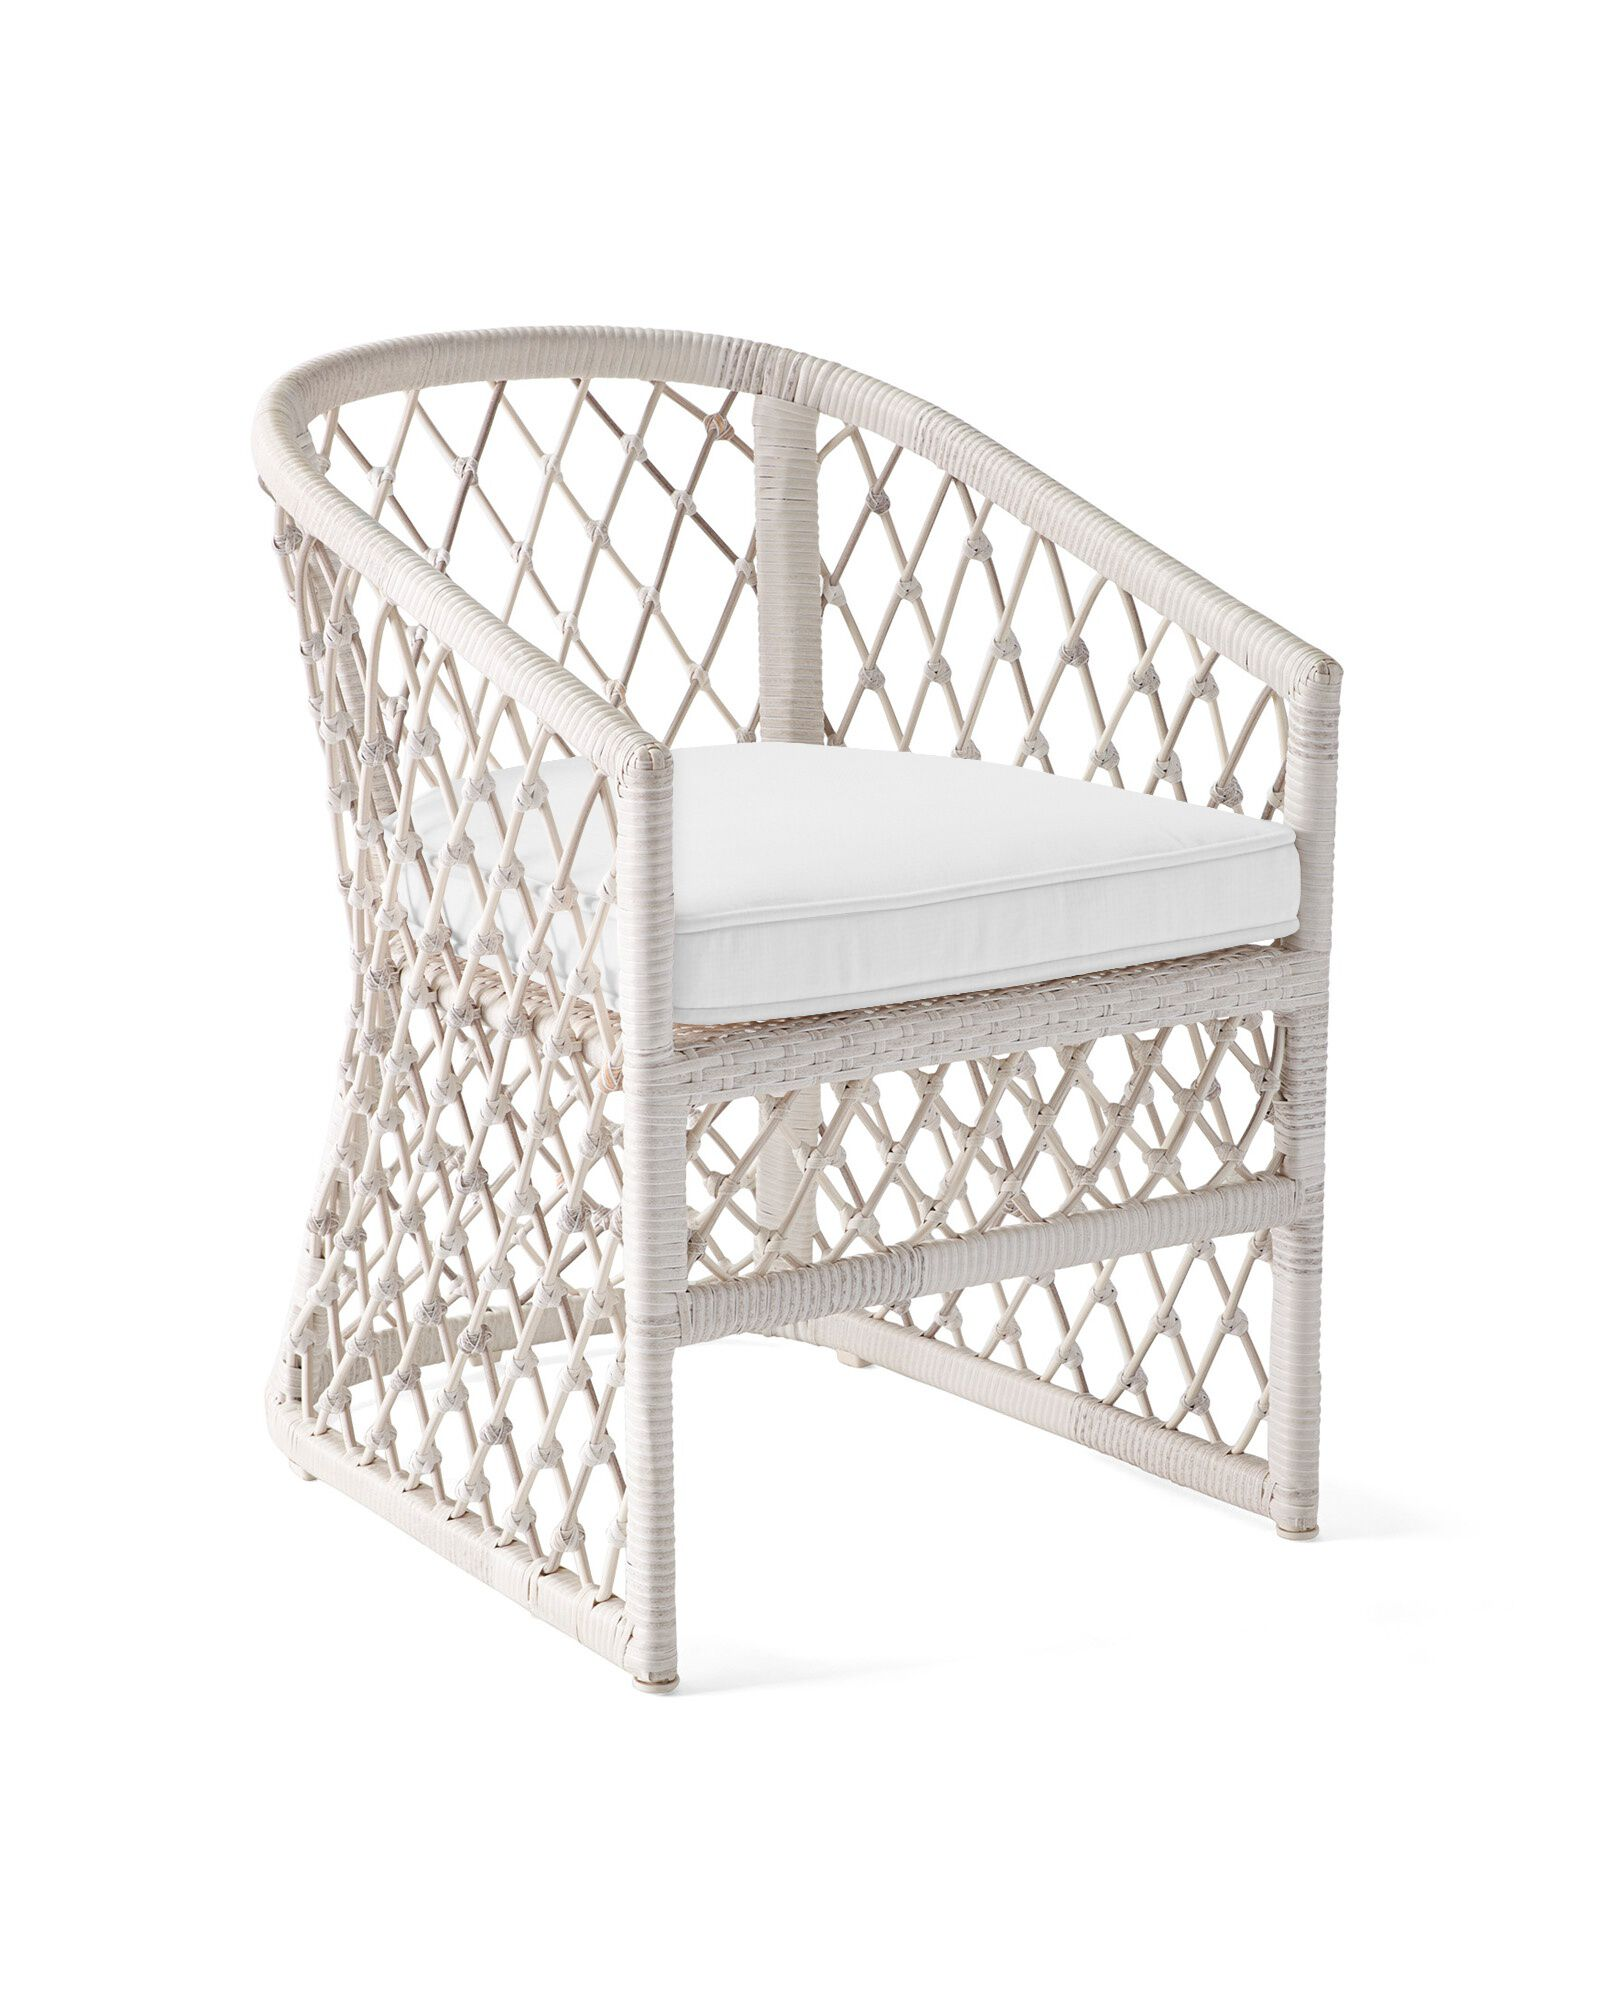 Cushion Cover for Capistrano Dining Chair, Perennials Basketweave White